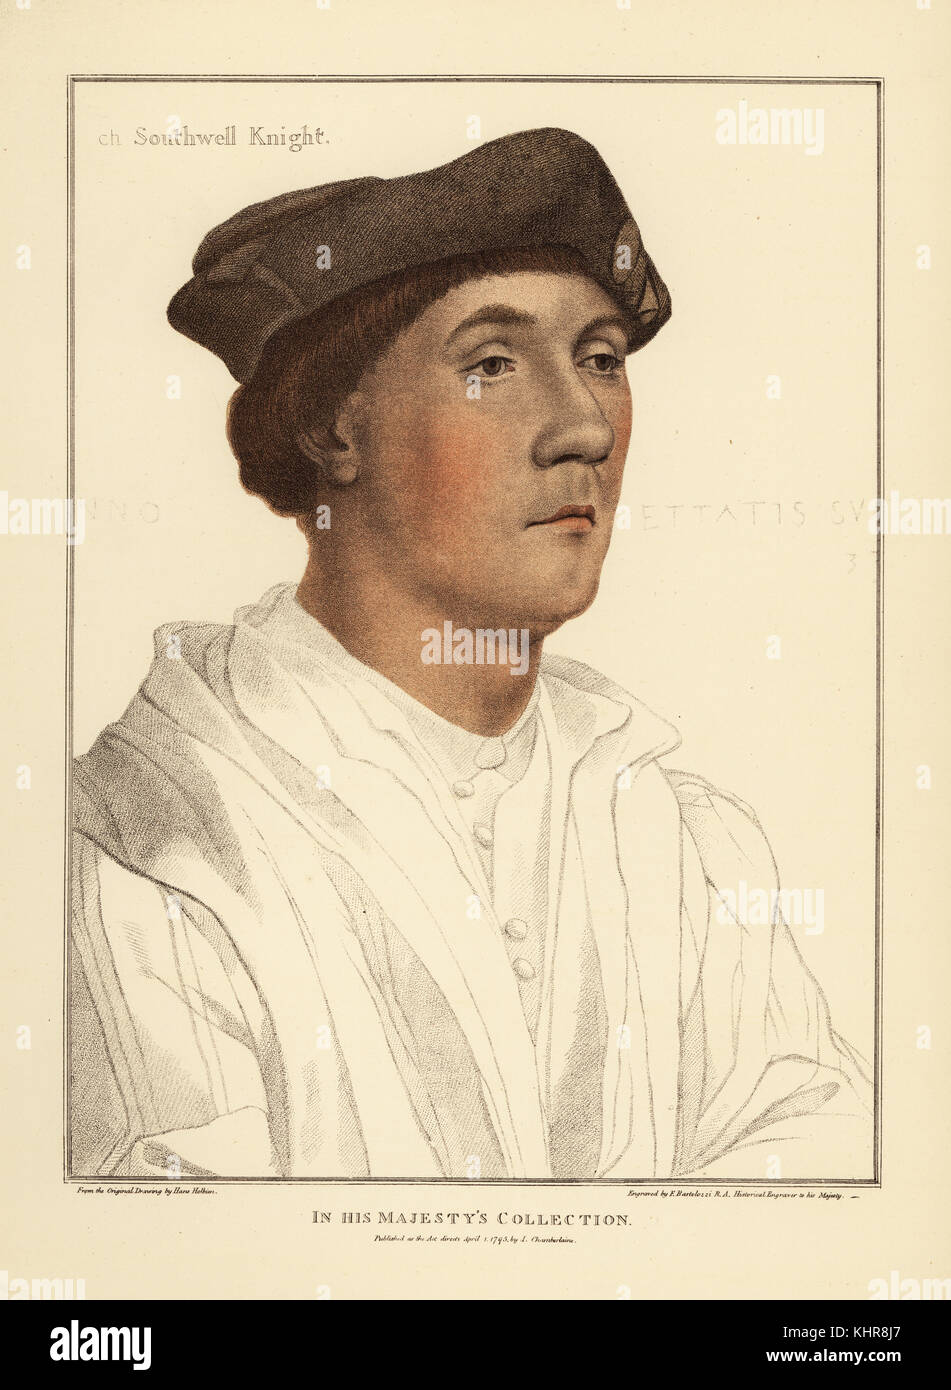 Sir Richard Southwell (c.1502- 1564), English Privy Councillor. Handcoloured copperplate engraving by Francis Bartolozzi - Stock Image